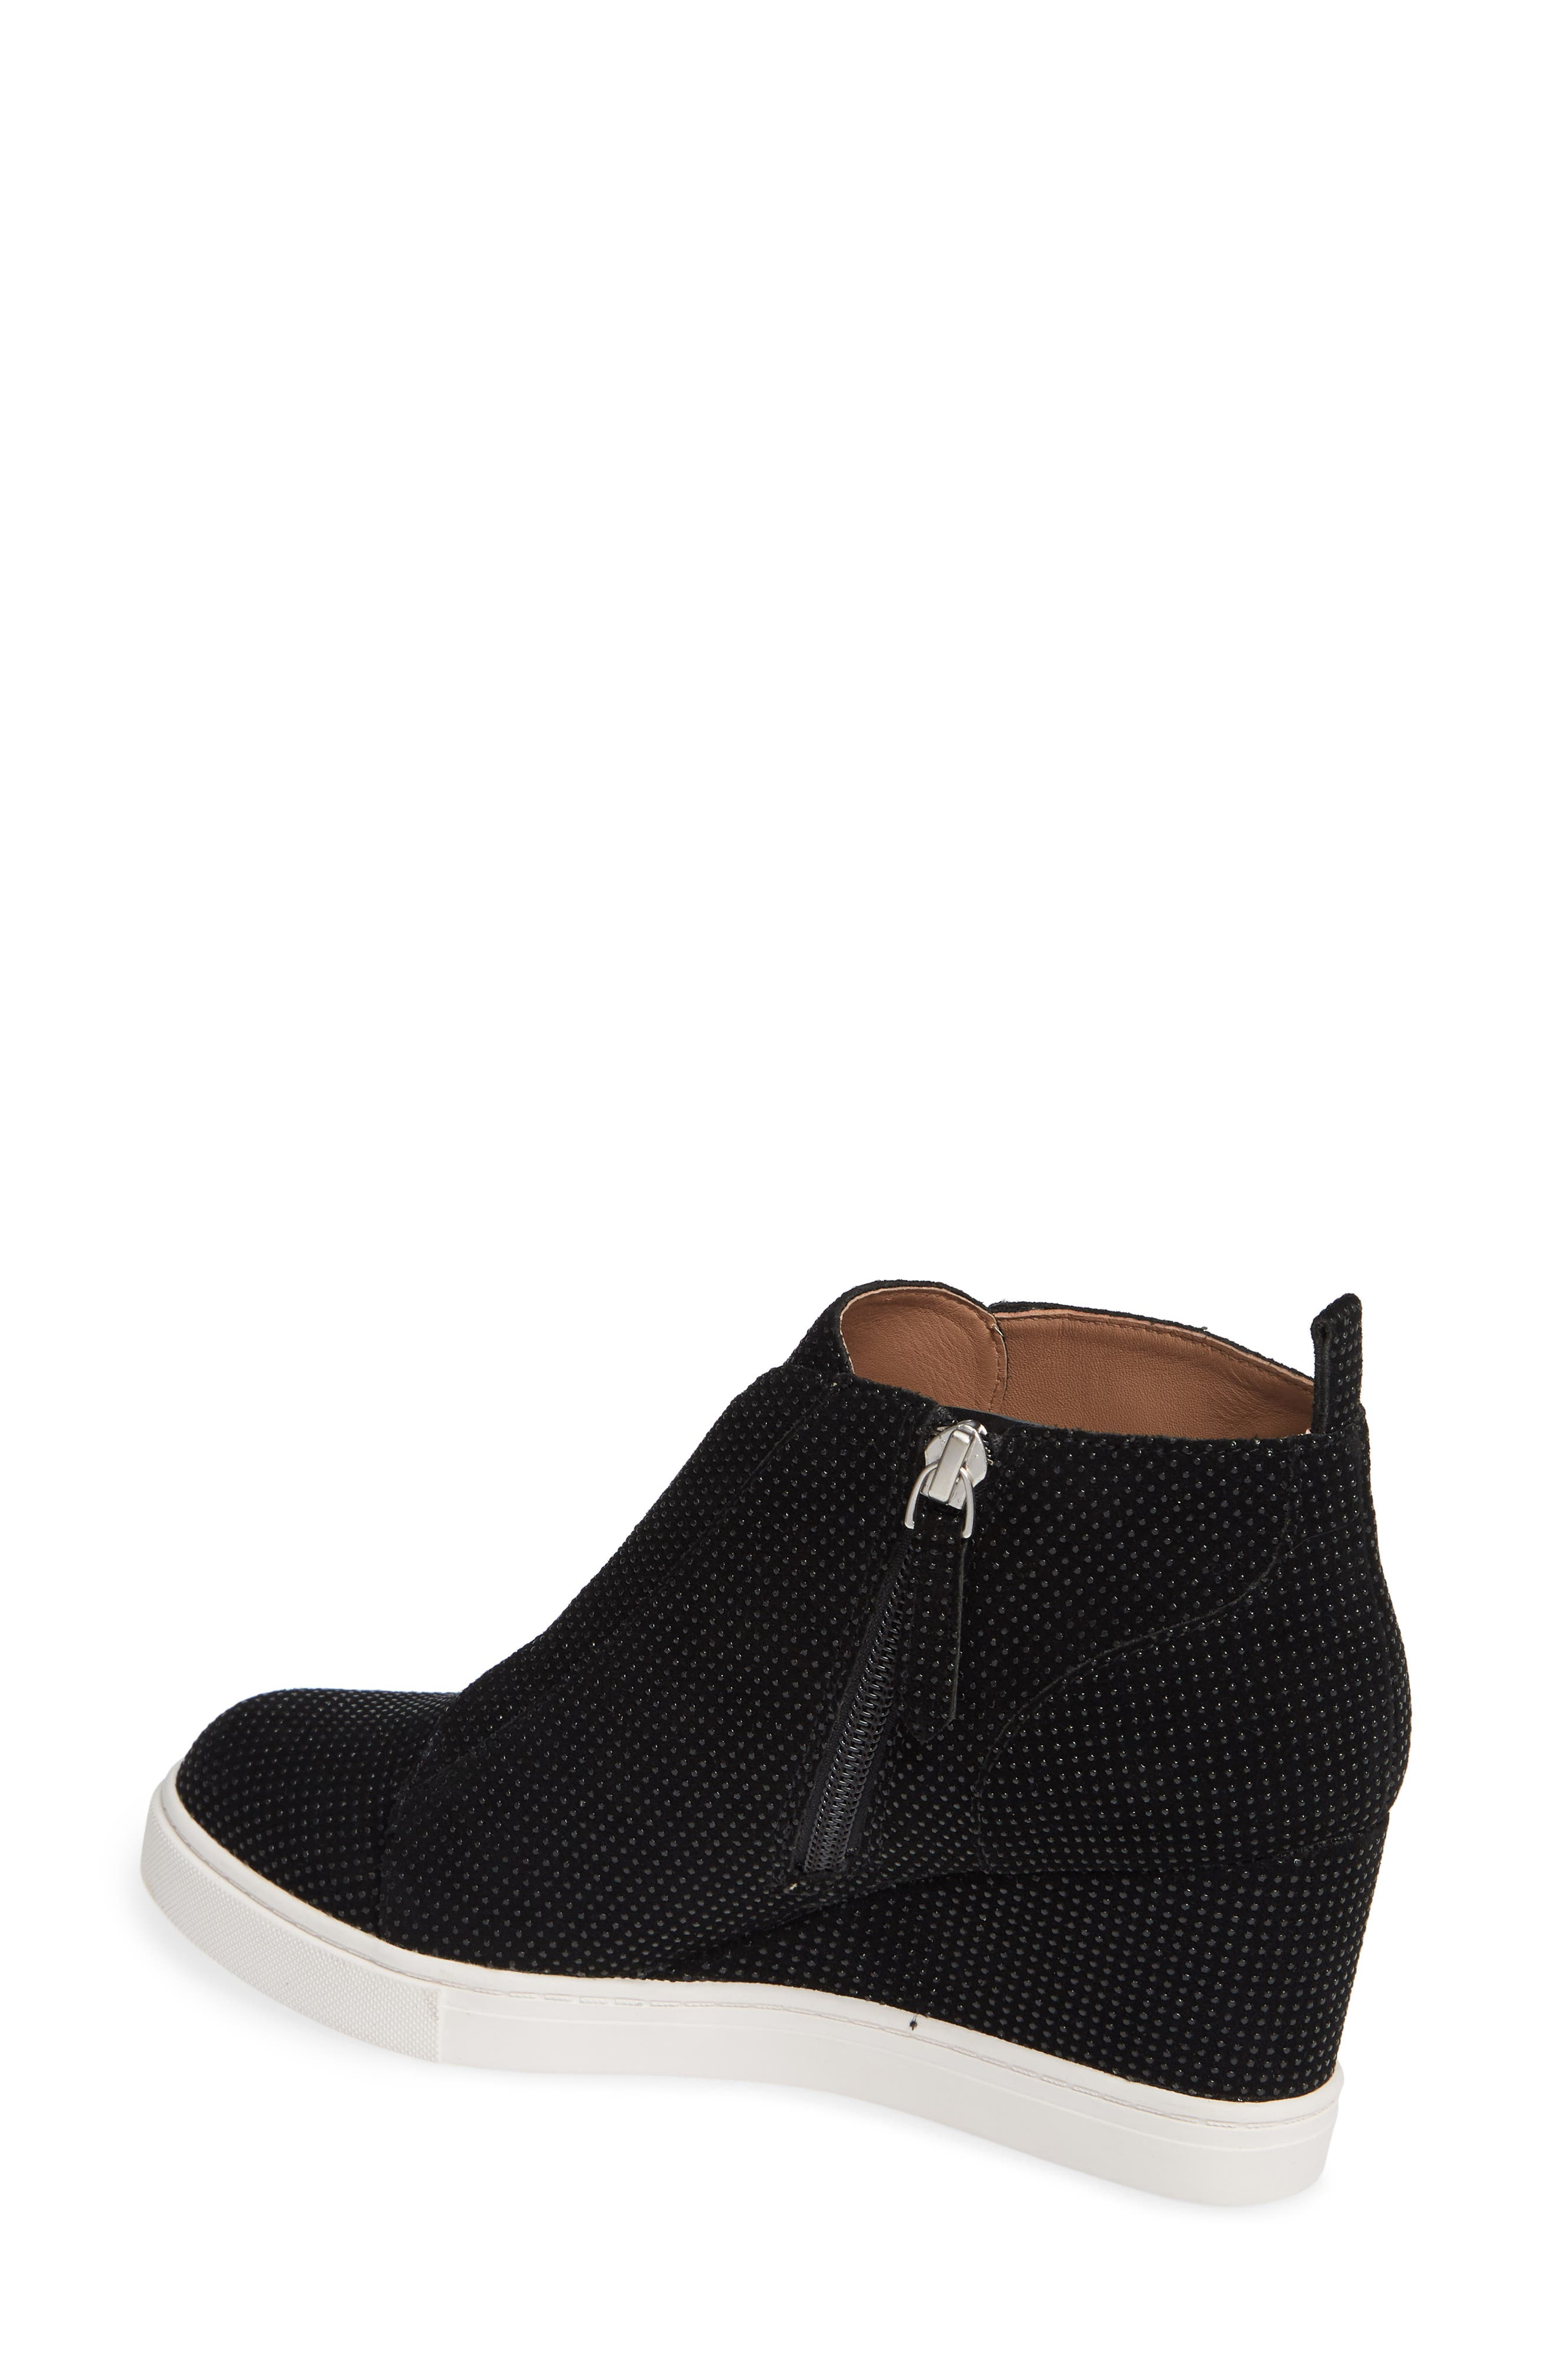 'Felicia' Wedge Bootie,                             Alternate thumbnail 2, color,                             BLACK TEXTURED SUEDE